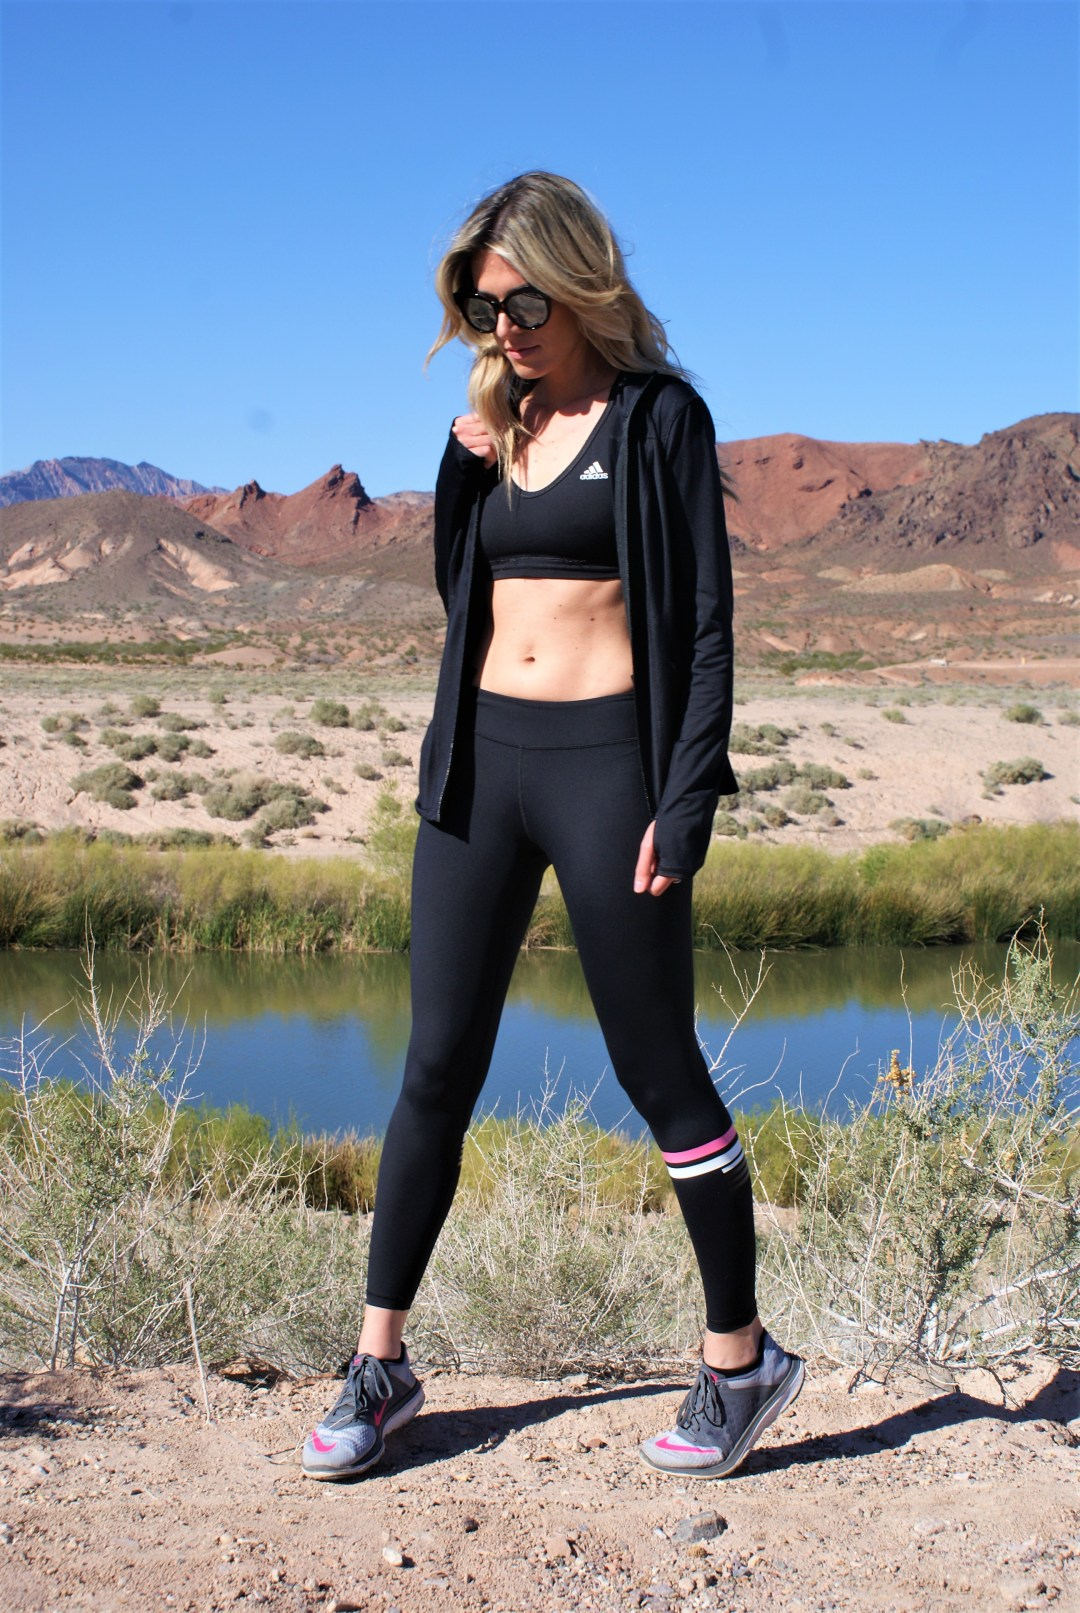 Workout Wear With Lilybod- Diariesofdanielle.com